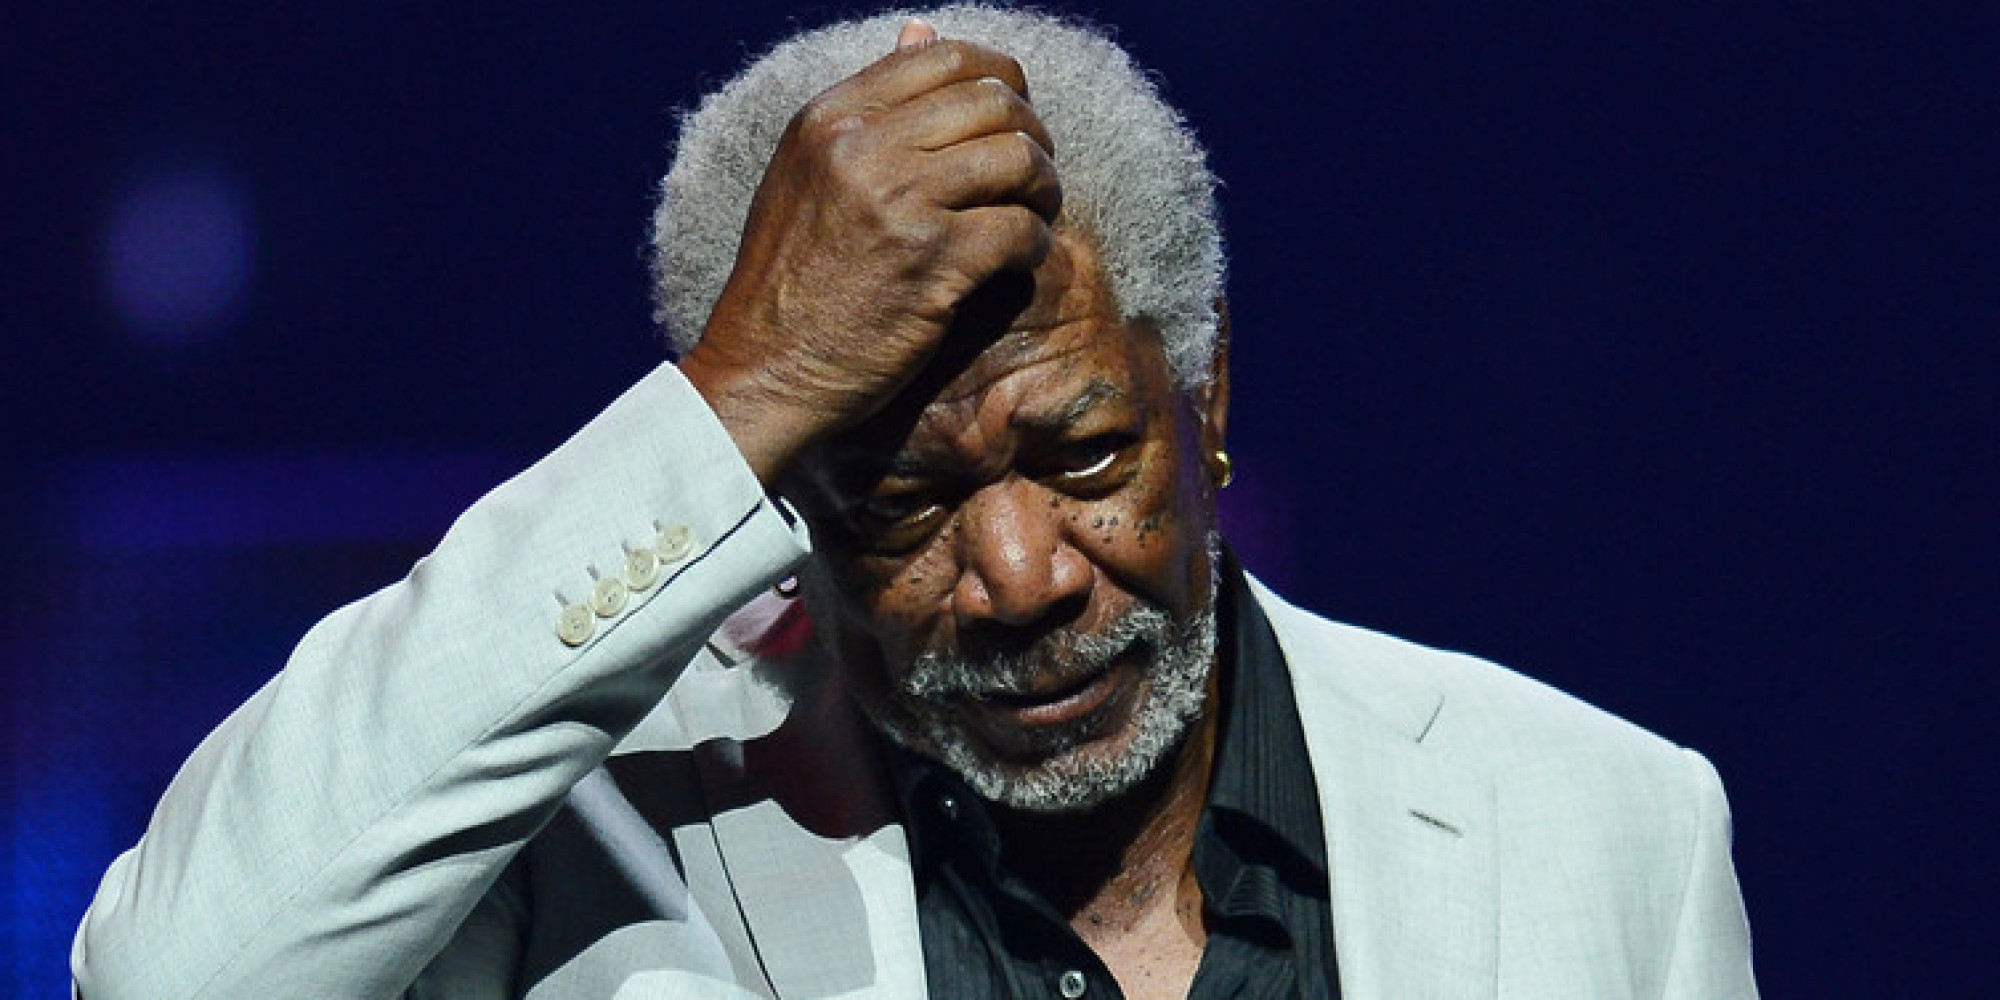 morgan freeman heliummorgan freeman plane crash, morgan freeman movies, morgan freeman age, morgan freeman plane, morgan freeman young, morgan freeman meme, morgan freeman quotes, morgan freeman death, morgan freeman voice, morgan freeman net worth, morgan freeman hand, morgan freeman bees, morgan freeman god, morgan freeman wiki, morgan freeman net worth 2015, morgan freeman helium, morgan freeman beekeeper, morgan freeman first movie, morgan freeman soundboard